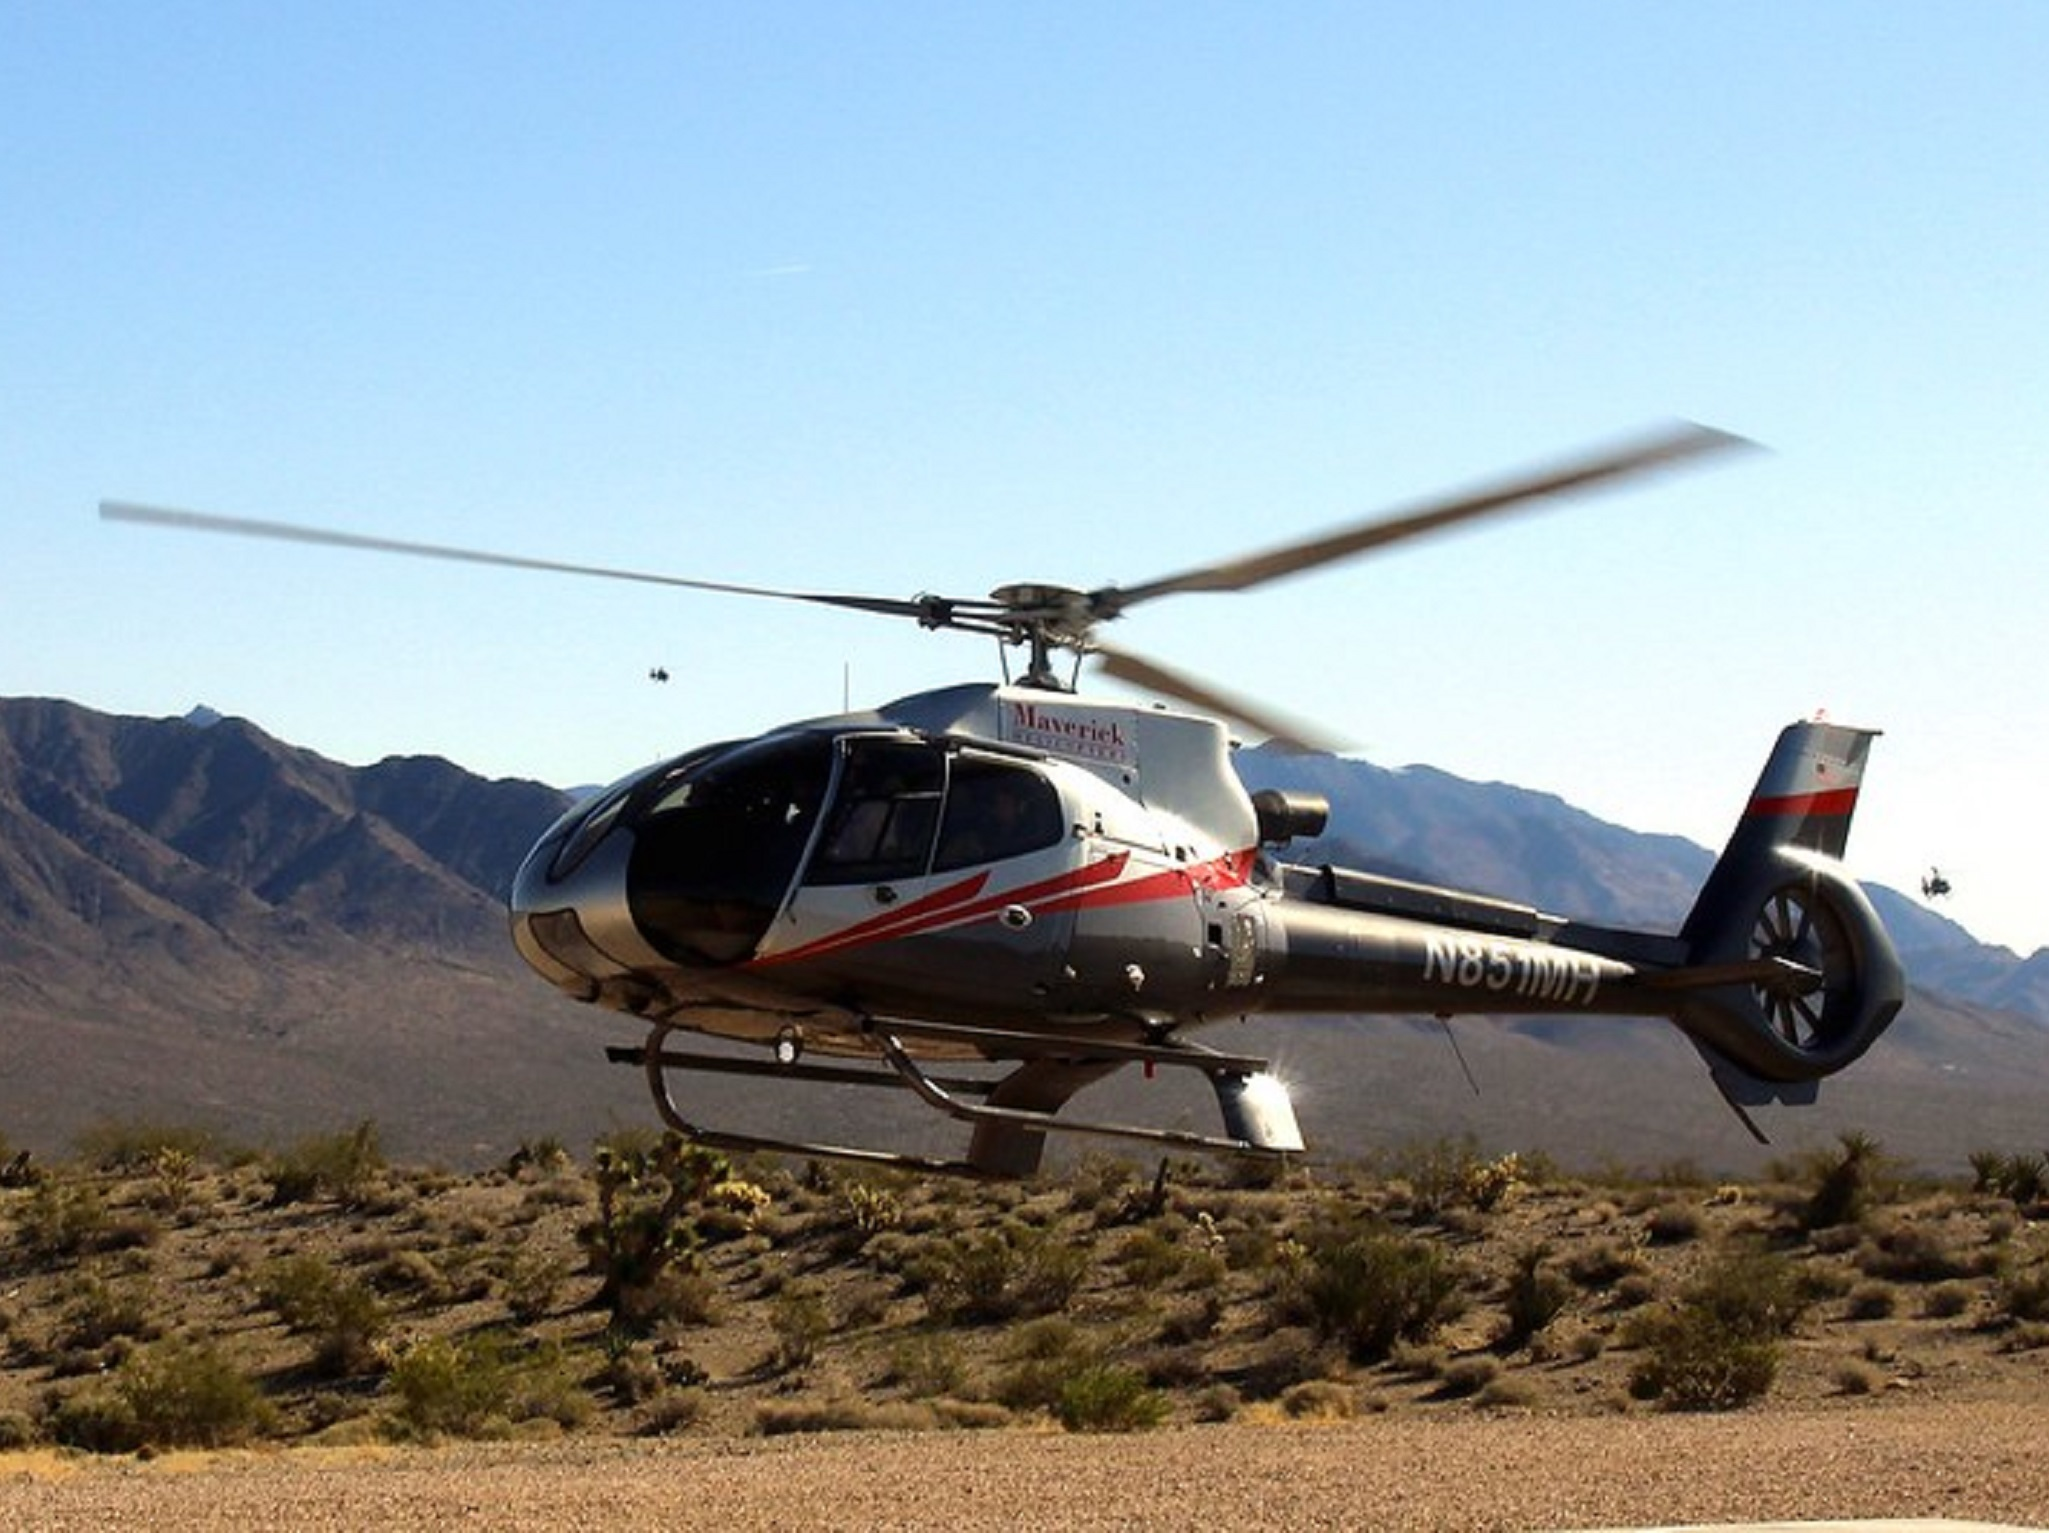 A helicopter lifting off in the desert